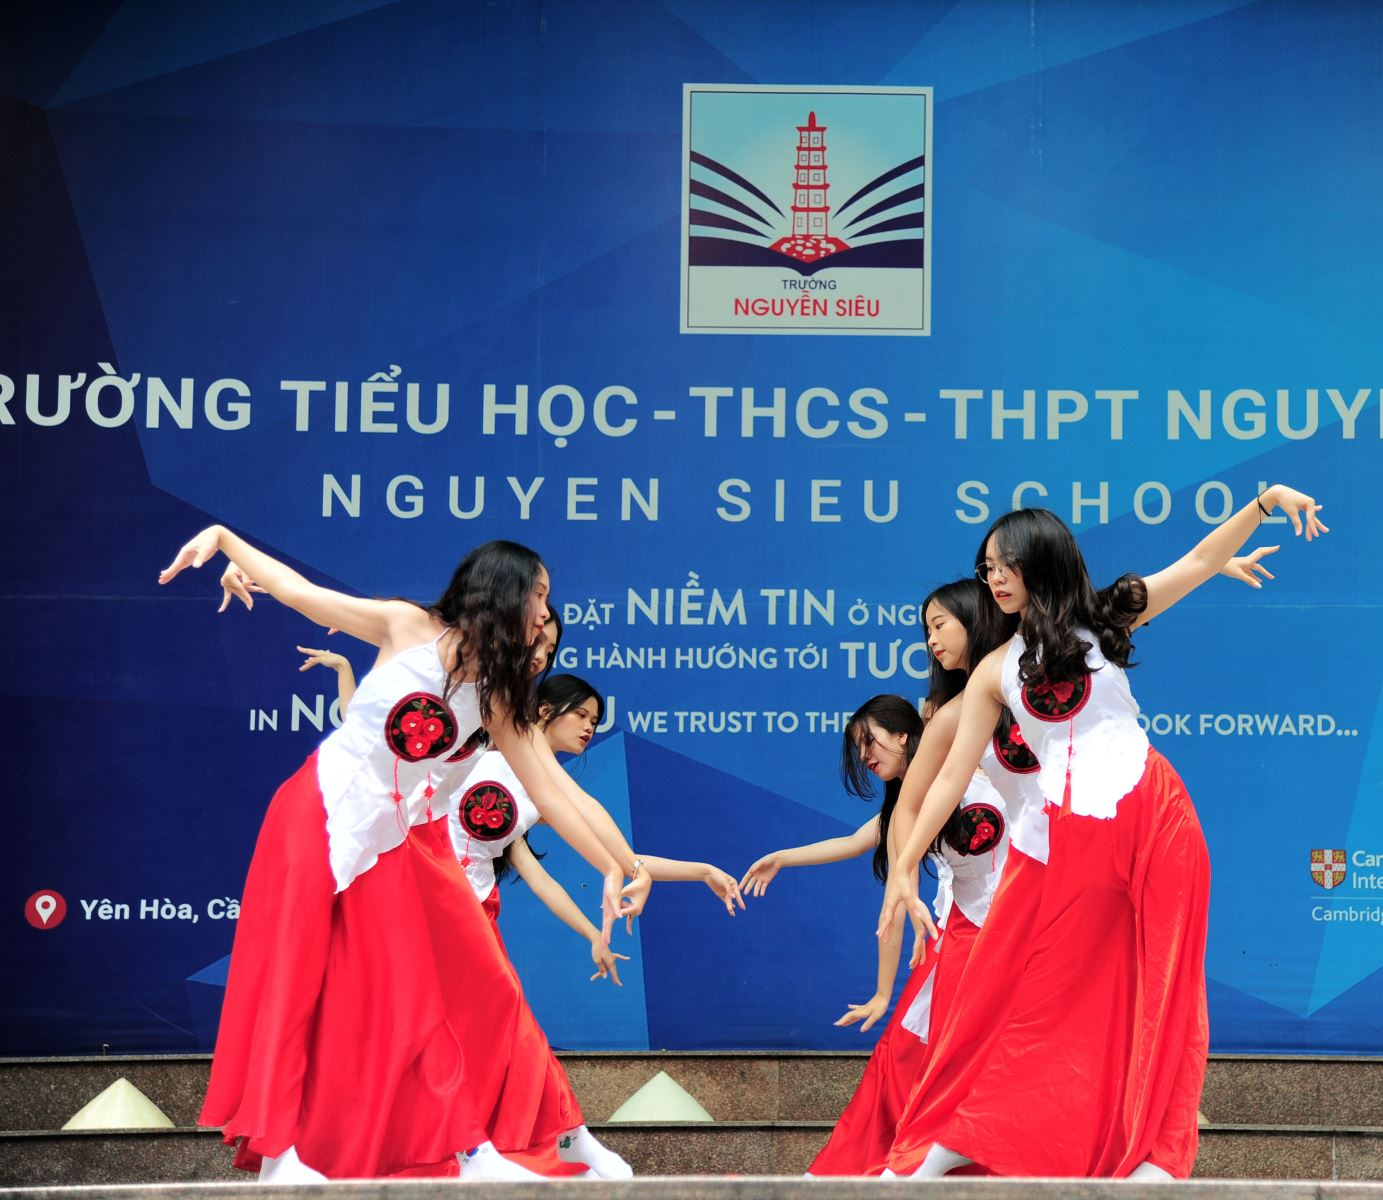 Celebrating Nguyen Sieu school's 28th year and Traffic safety awareness month